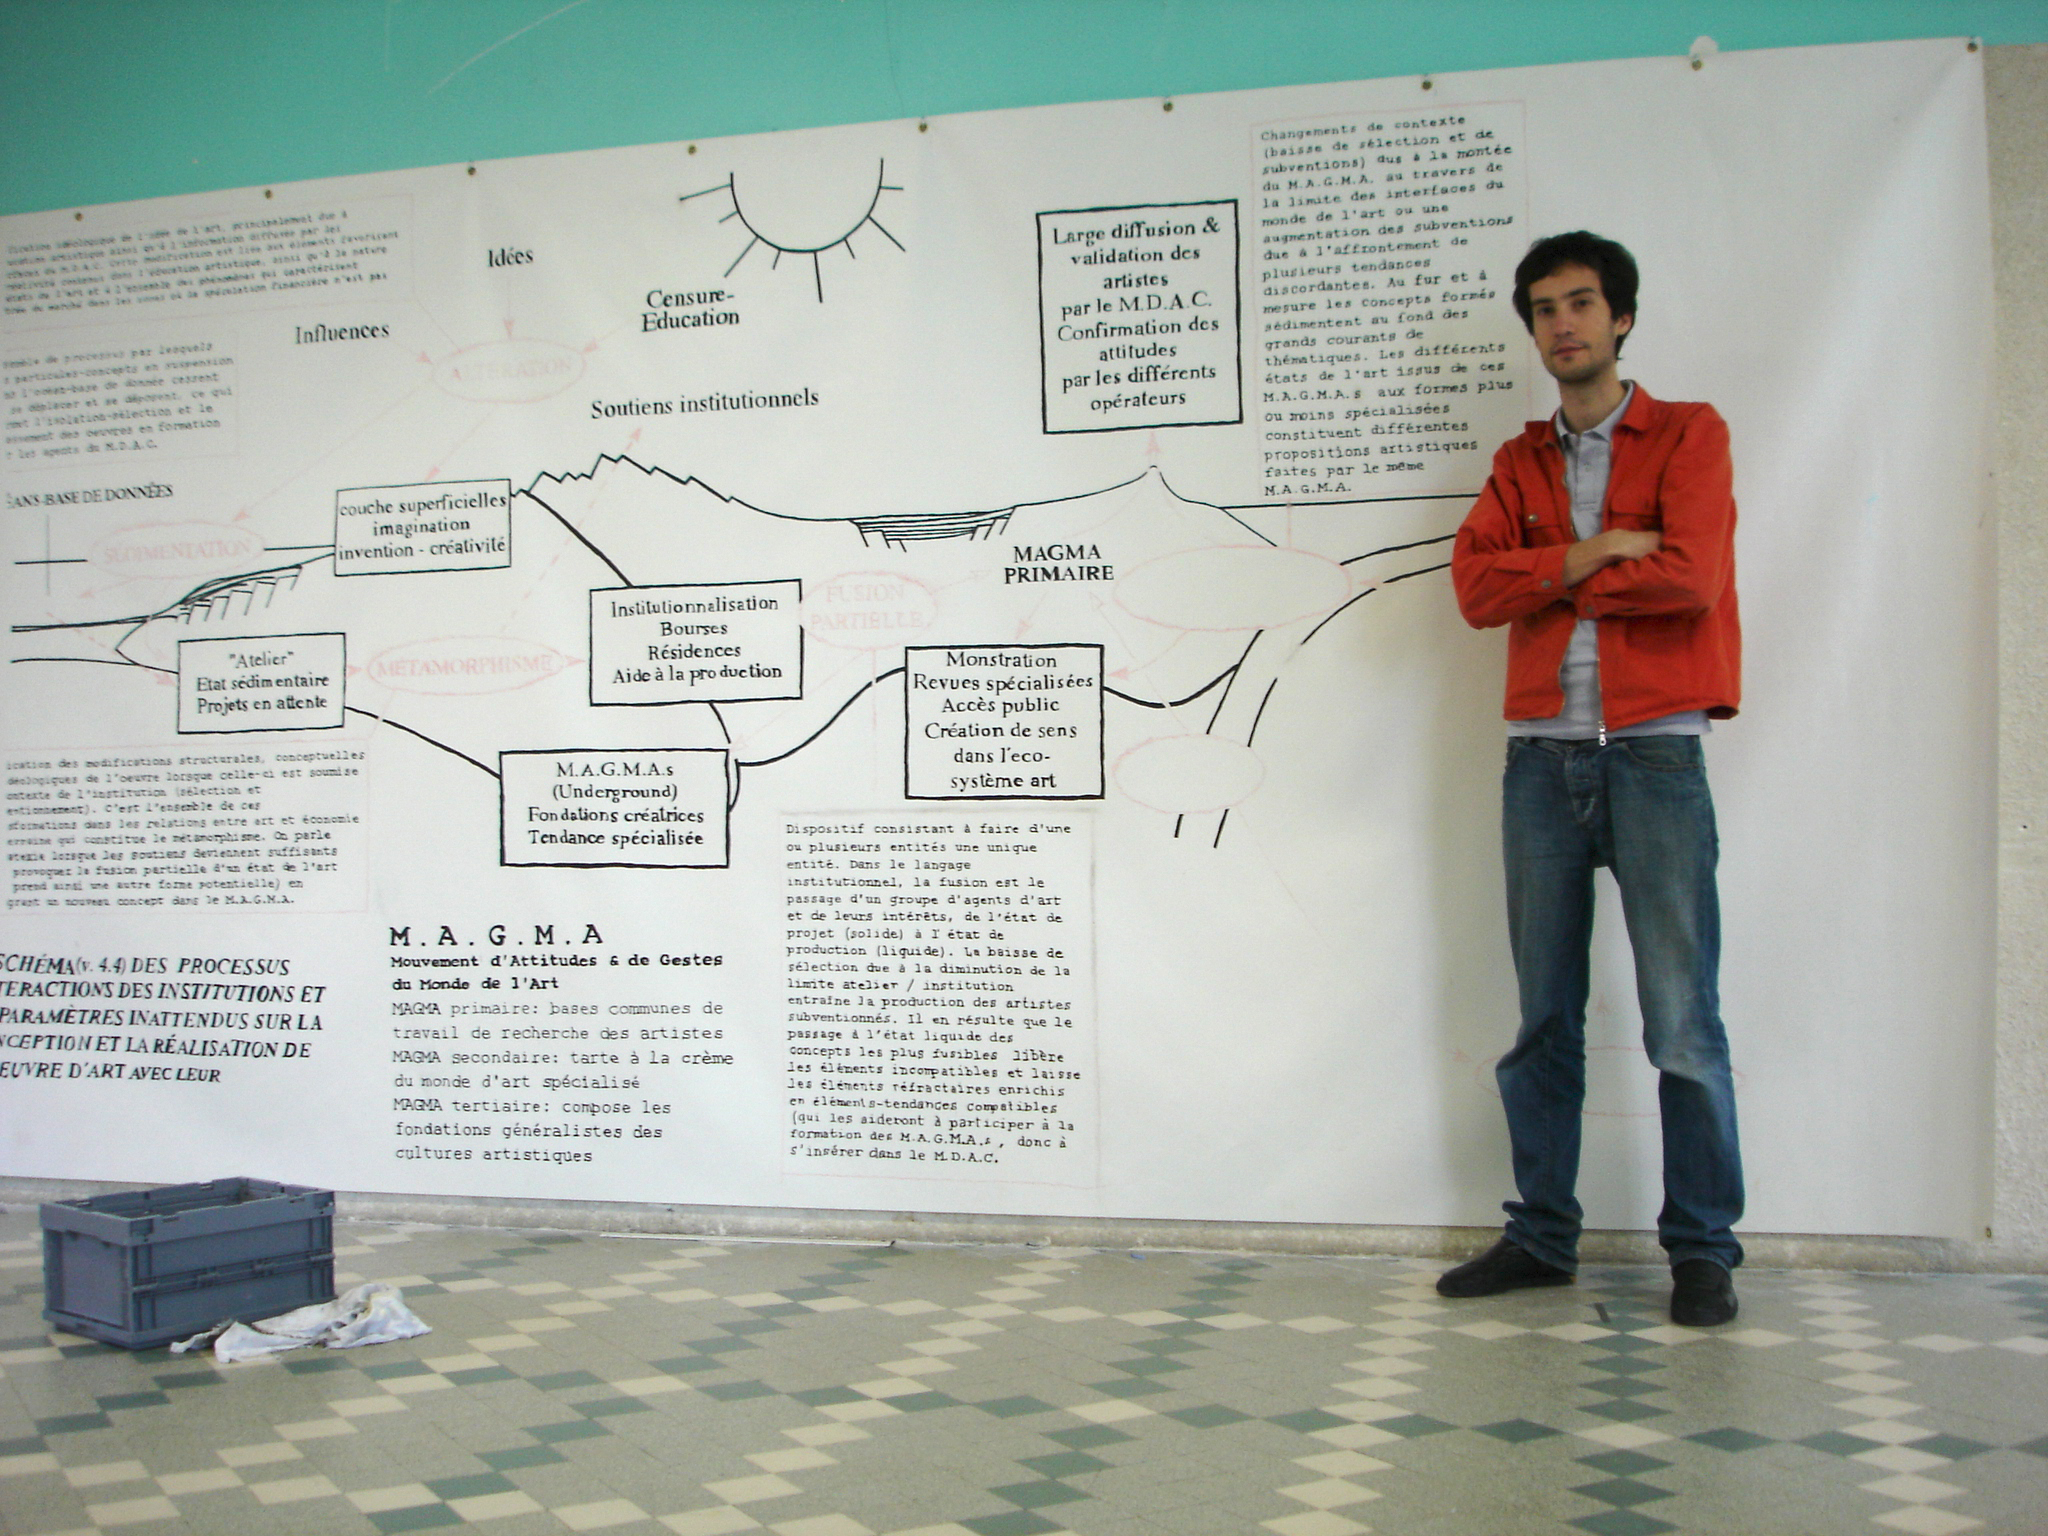 Person posing in front of a schema with a lot of writing on a wall